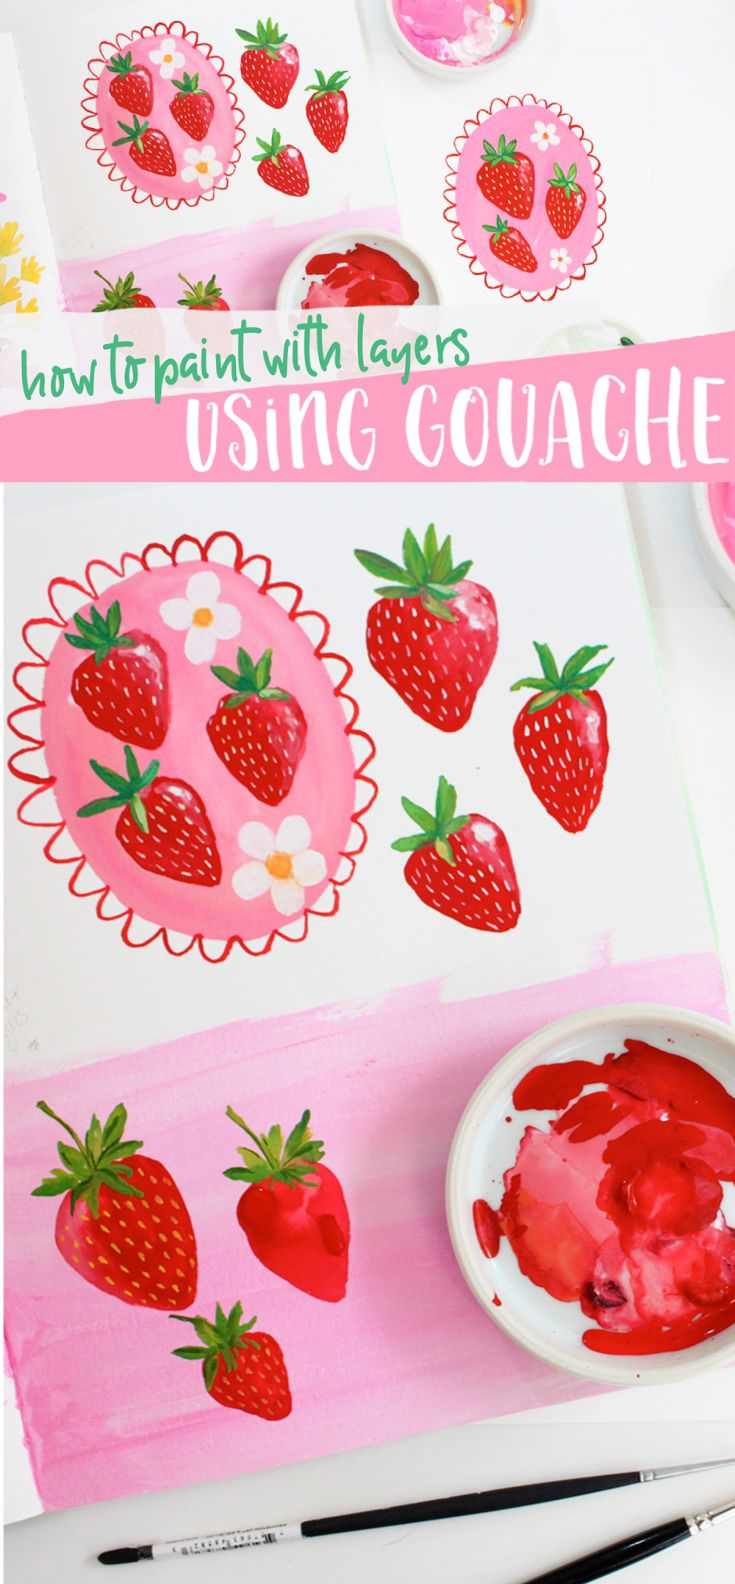 Gouache Painting Video Tutorial!  Follow along and learn how to paint these simple strawberries using layers with gouache!